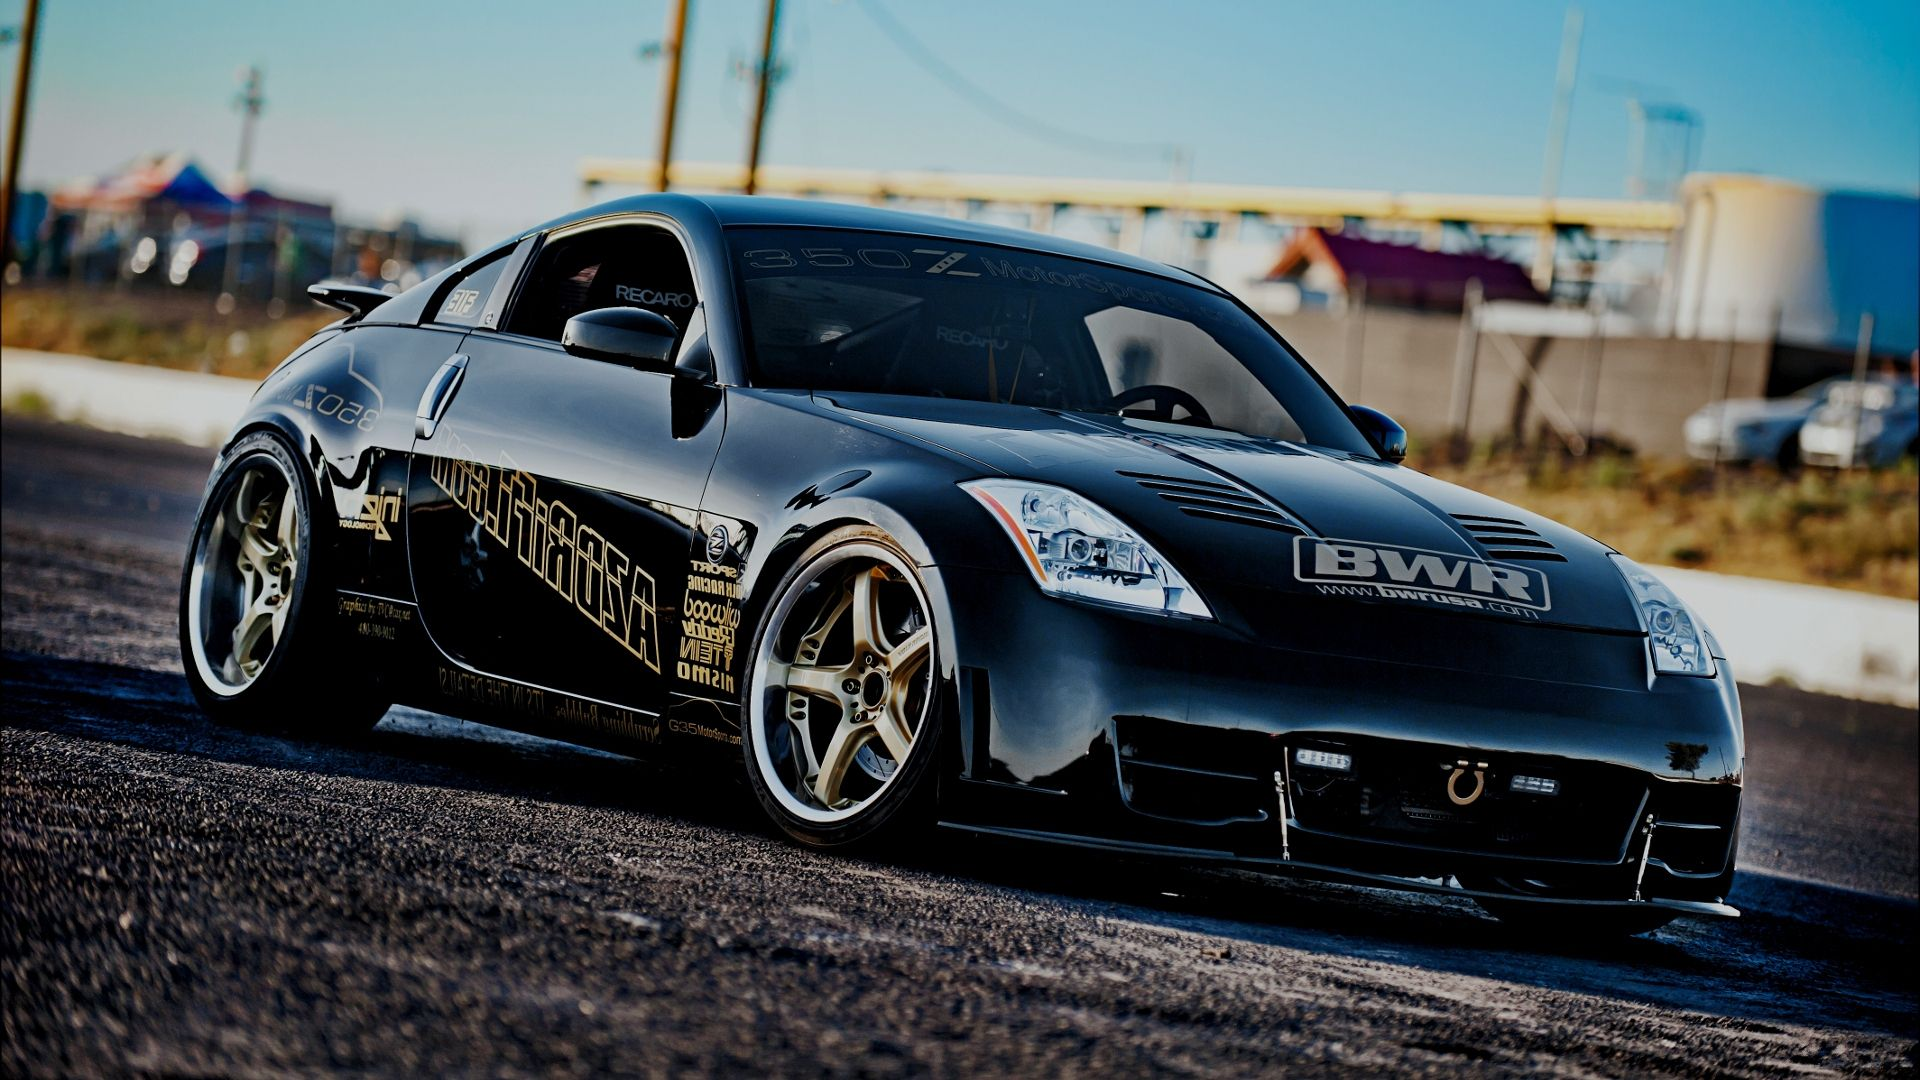 Tuned cars wallpapers 8 tuned cars wallpapers pinterest car tuned cars wallpapers 8 publicscrutiny Image collections